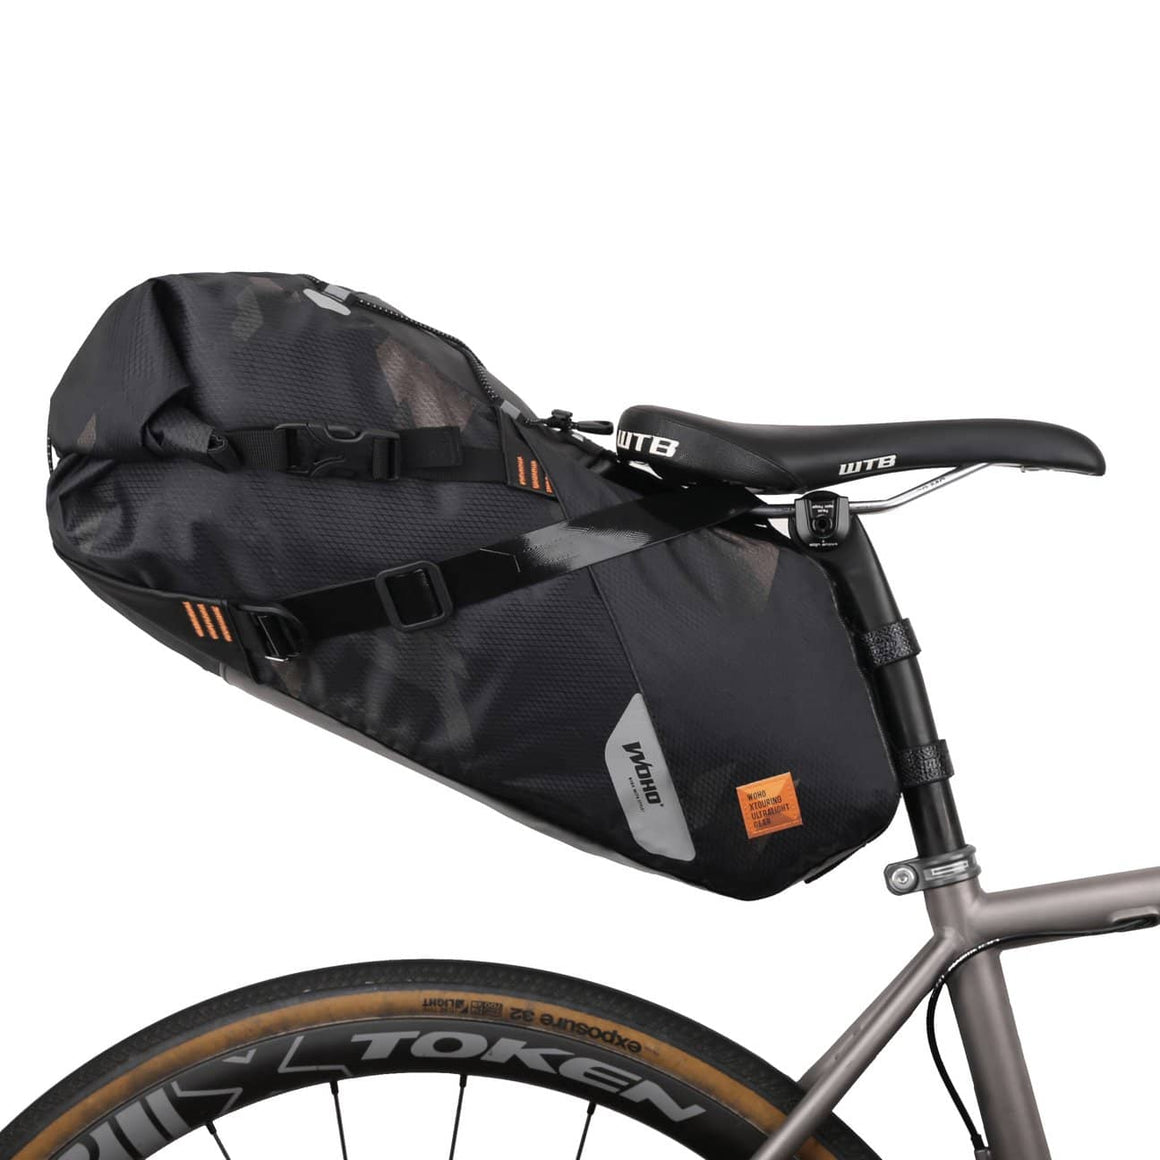 WOHO Ultralight Saddle Bag - 18L - Waterproof - Cycle Touring Life